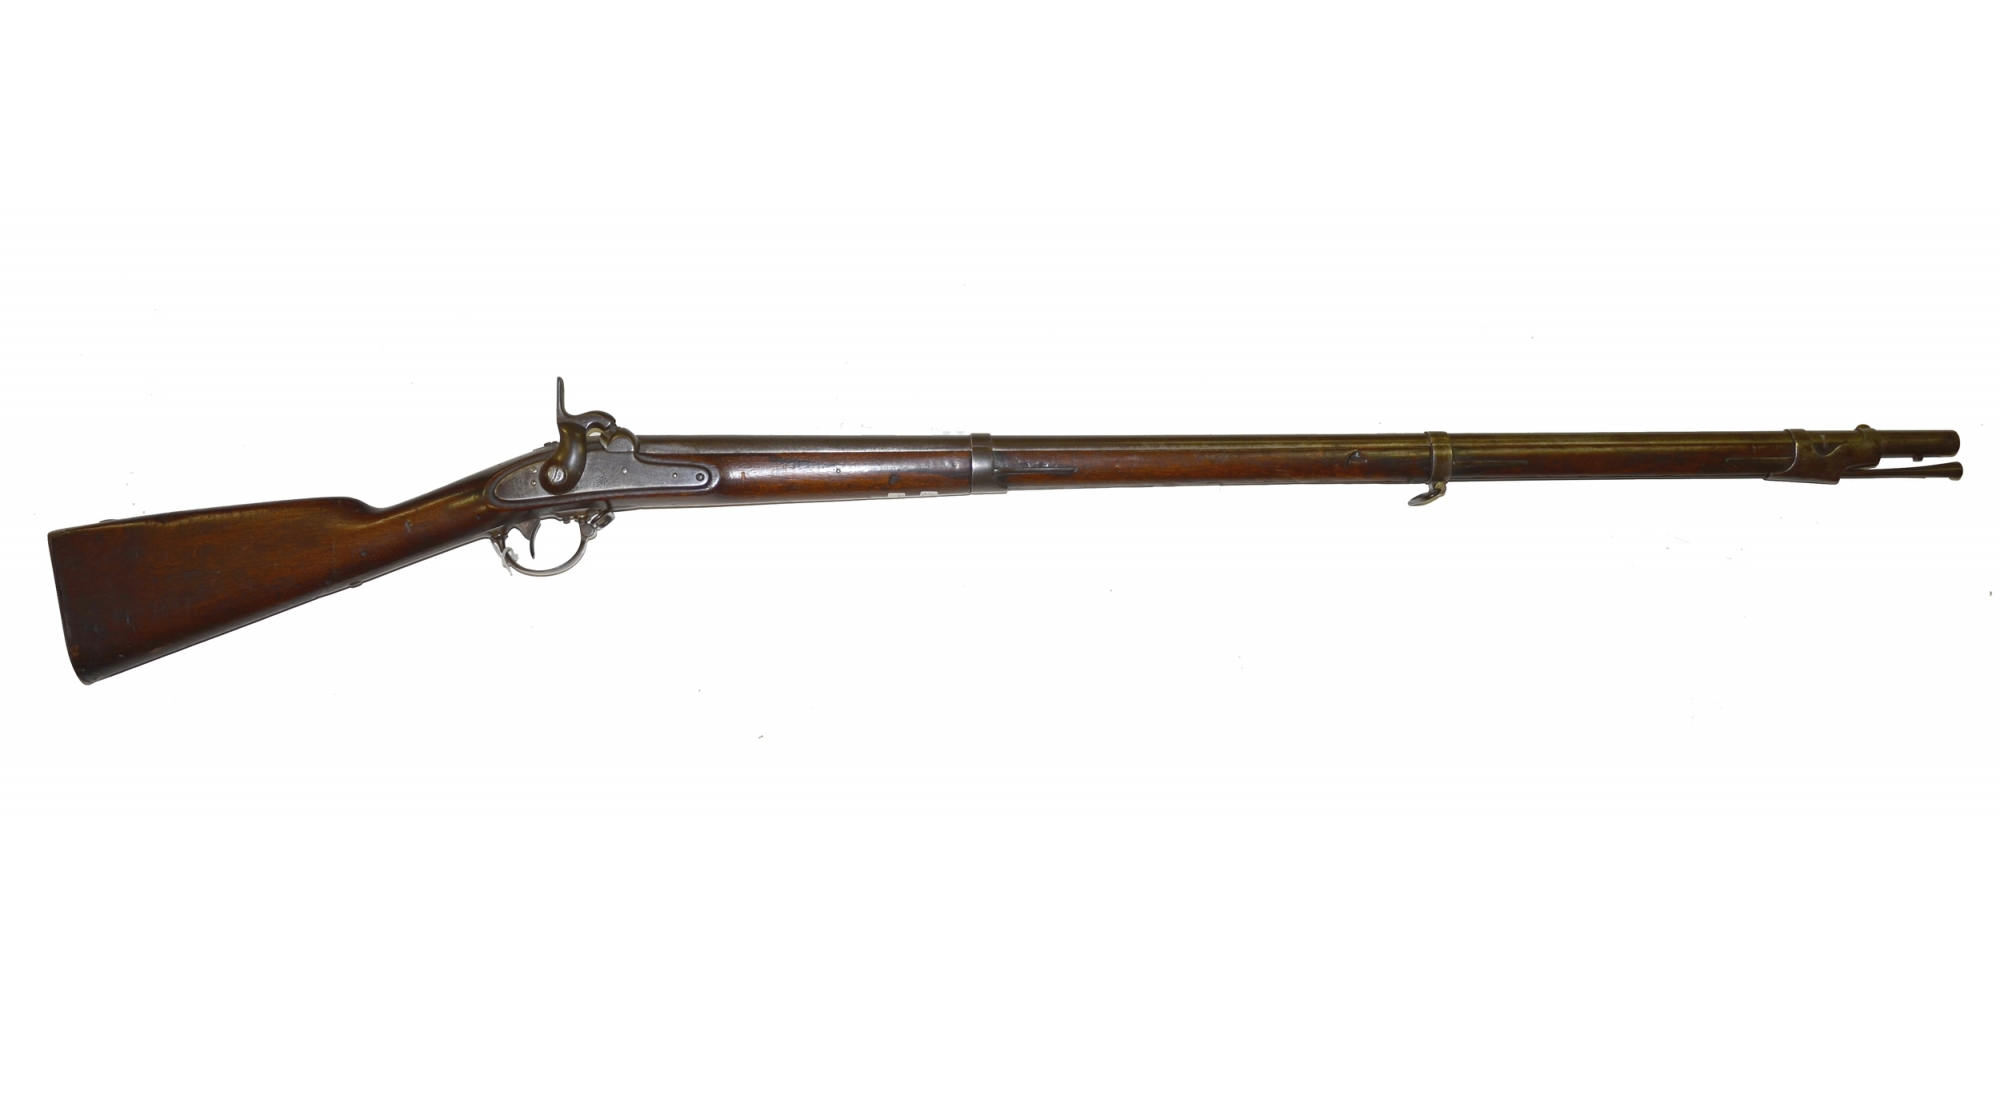 PARTIALLY-IDENTIFIED HARPERS FERRY M1842 SMOOTHBORE MUSKET